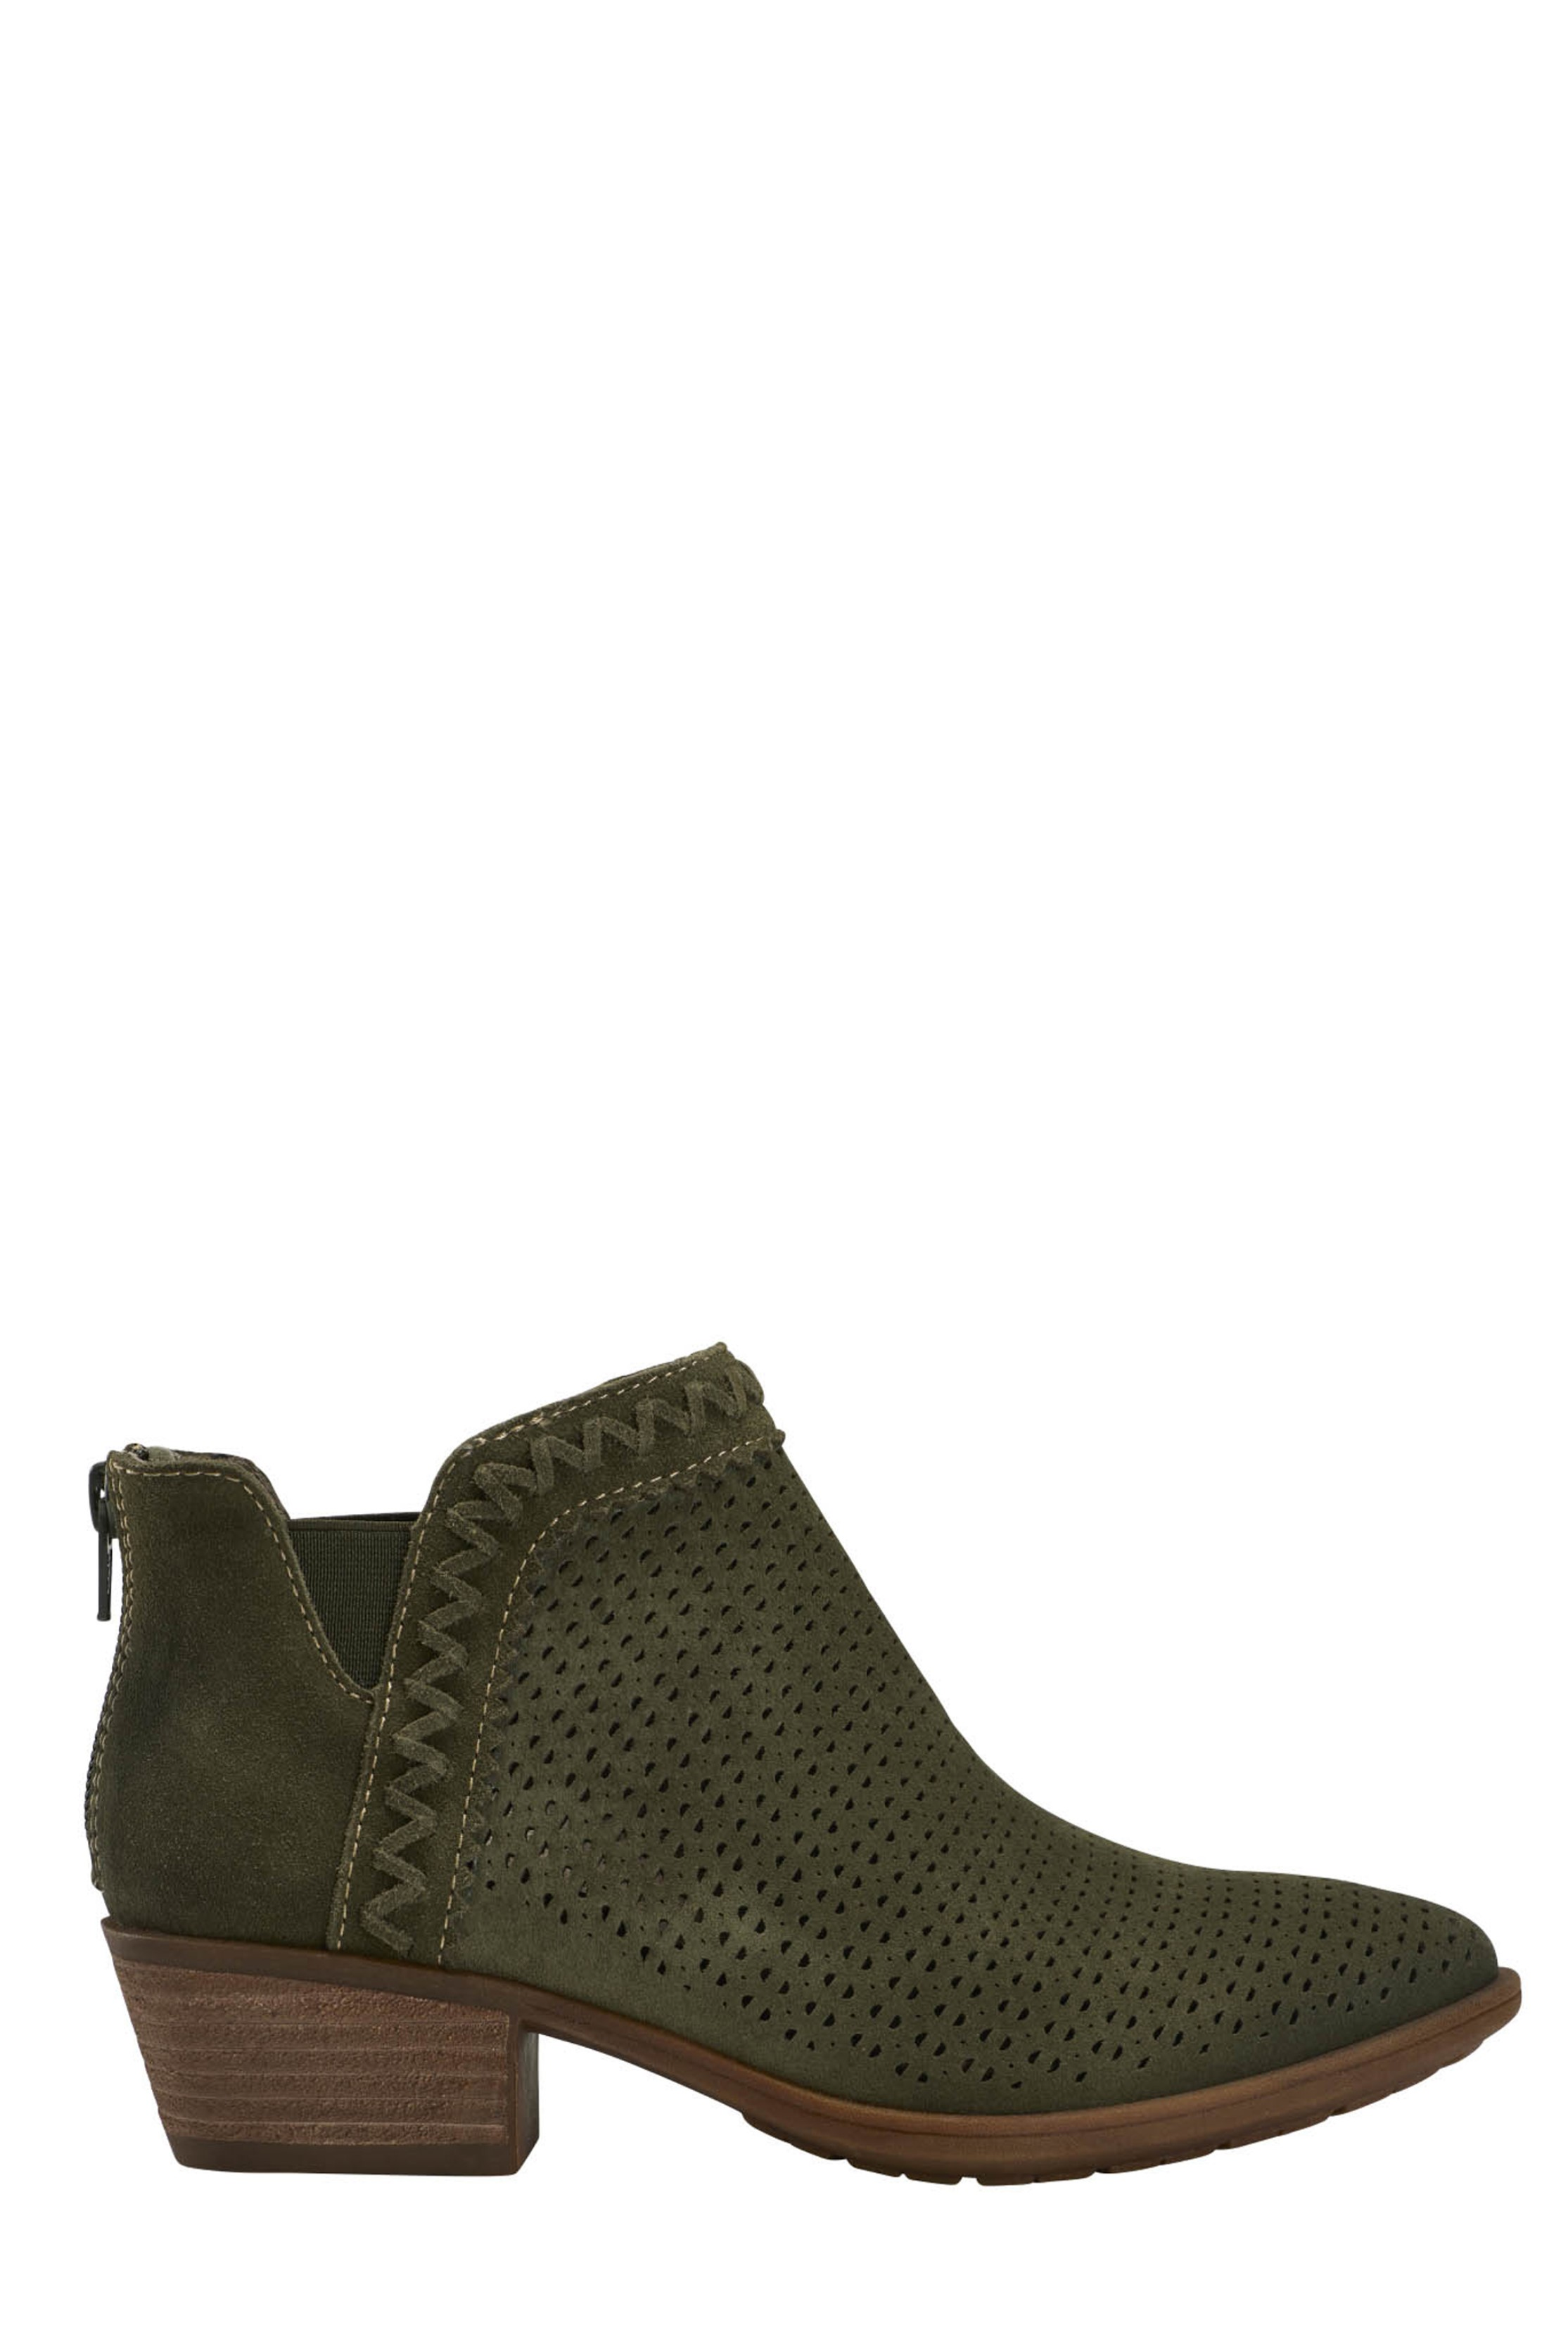 EARTH Green Perry Ankle Boot